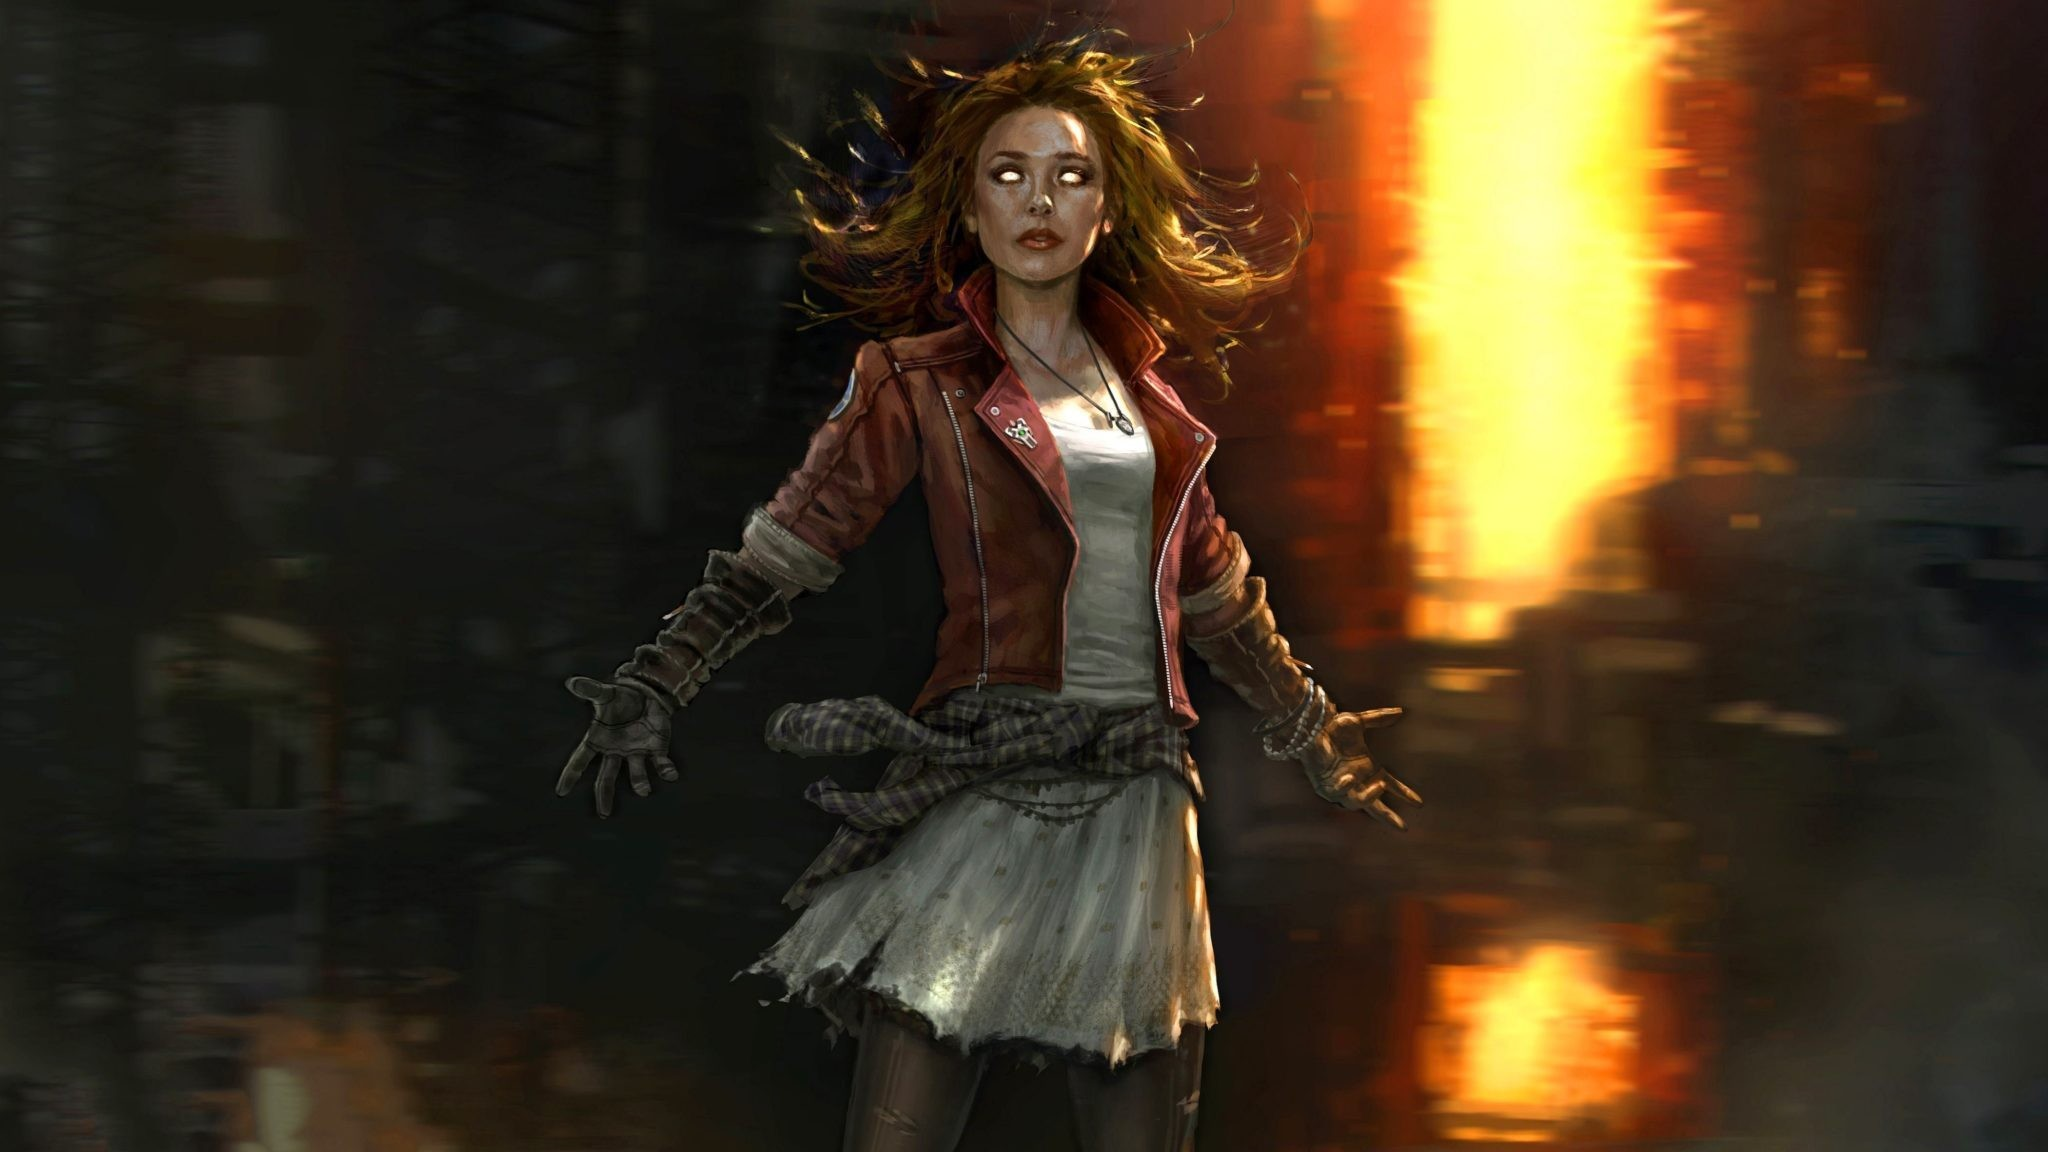 Scarlet Witch Wanda Maximoff 4K Wallpapers, Images